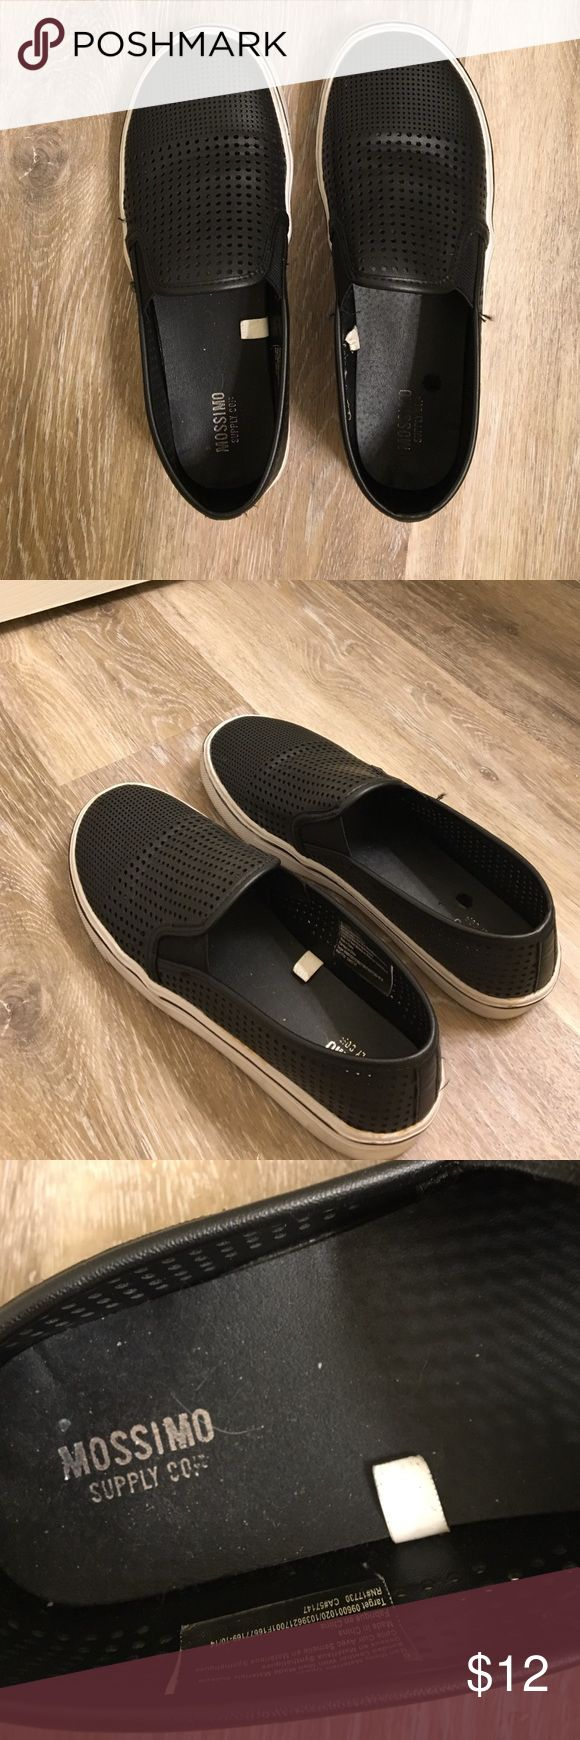 Slip Ons😎 Awesome slip ons made out of leathery material! Are true to size and make any outfit a bit more hipster. They are made by Mossimo Supply Co but I'm listing then as pac sun for more views! Comment with questions or concerns😘 PacSun Shoes